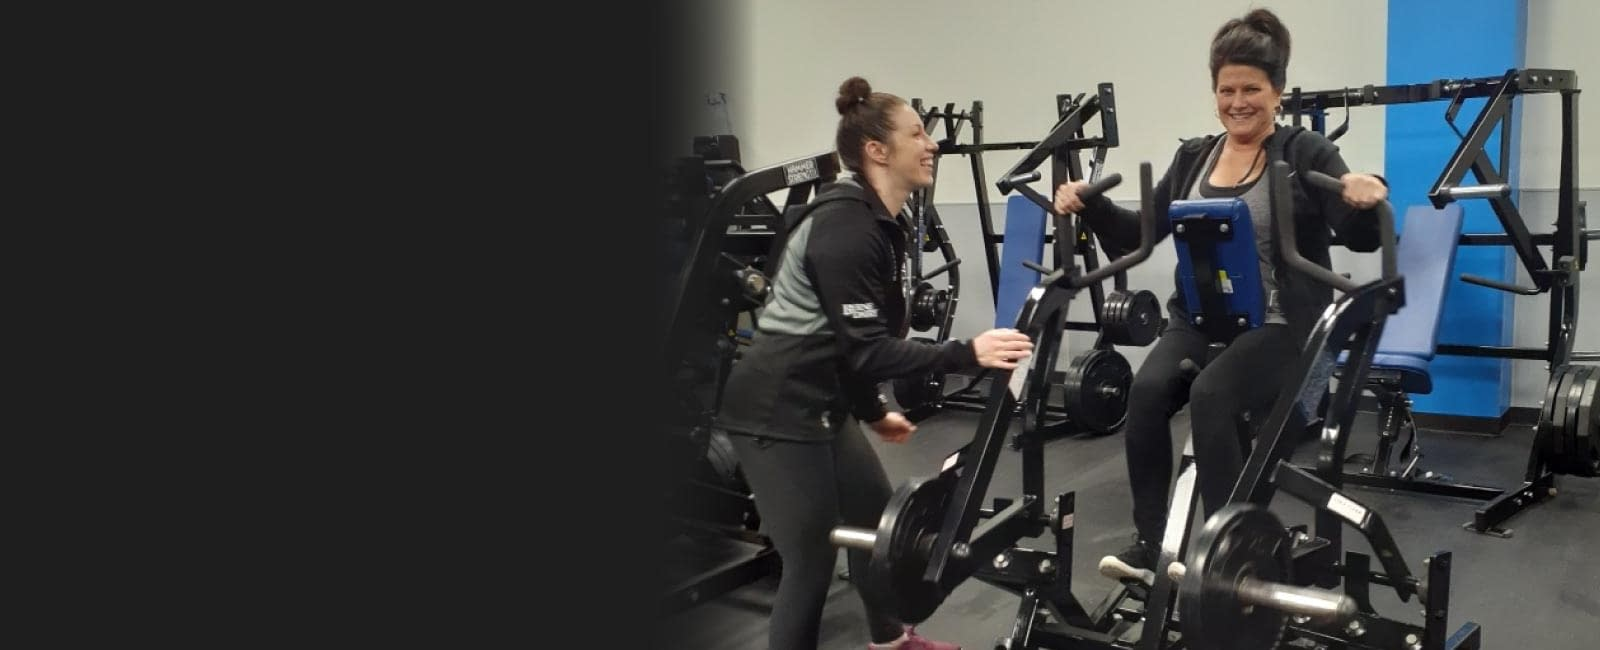 Personal trainer coaching a woman on an excercise bike - Train Hard Fitness  8180 Oswego Rd.  Liverpool, NY 13090  315-409-4764